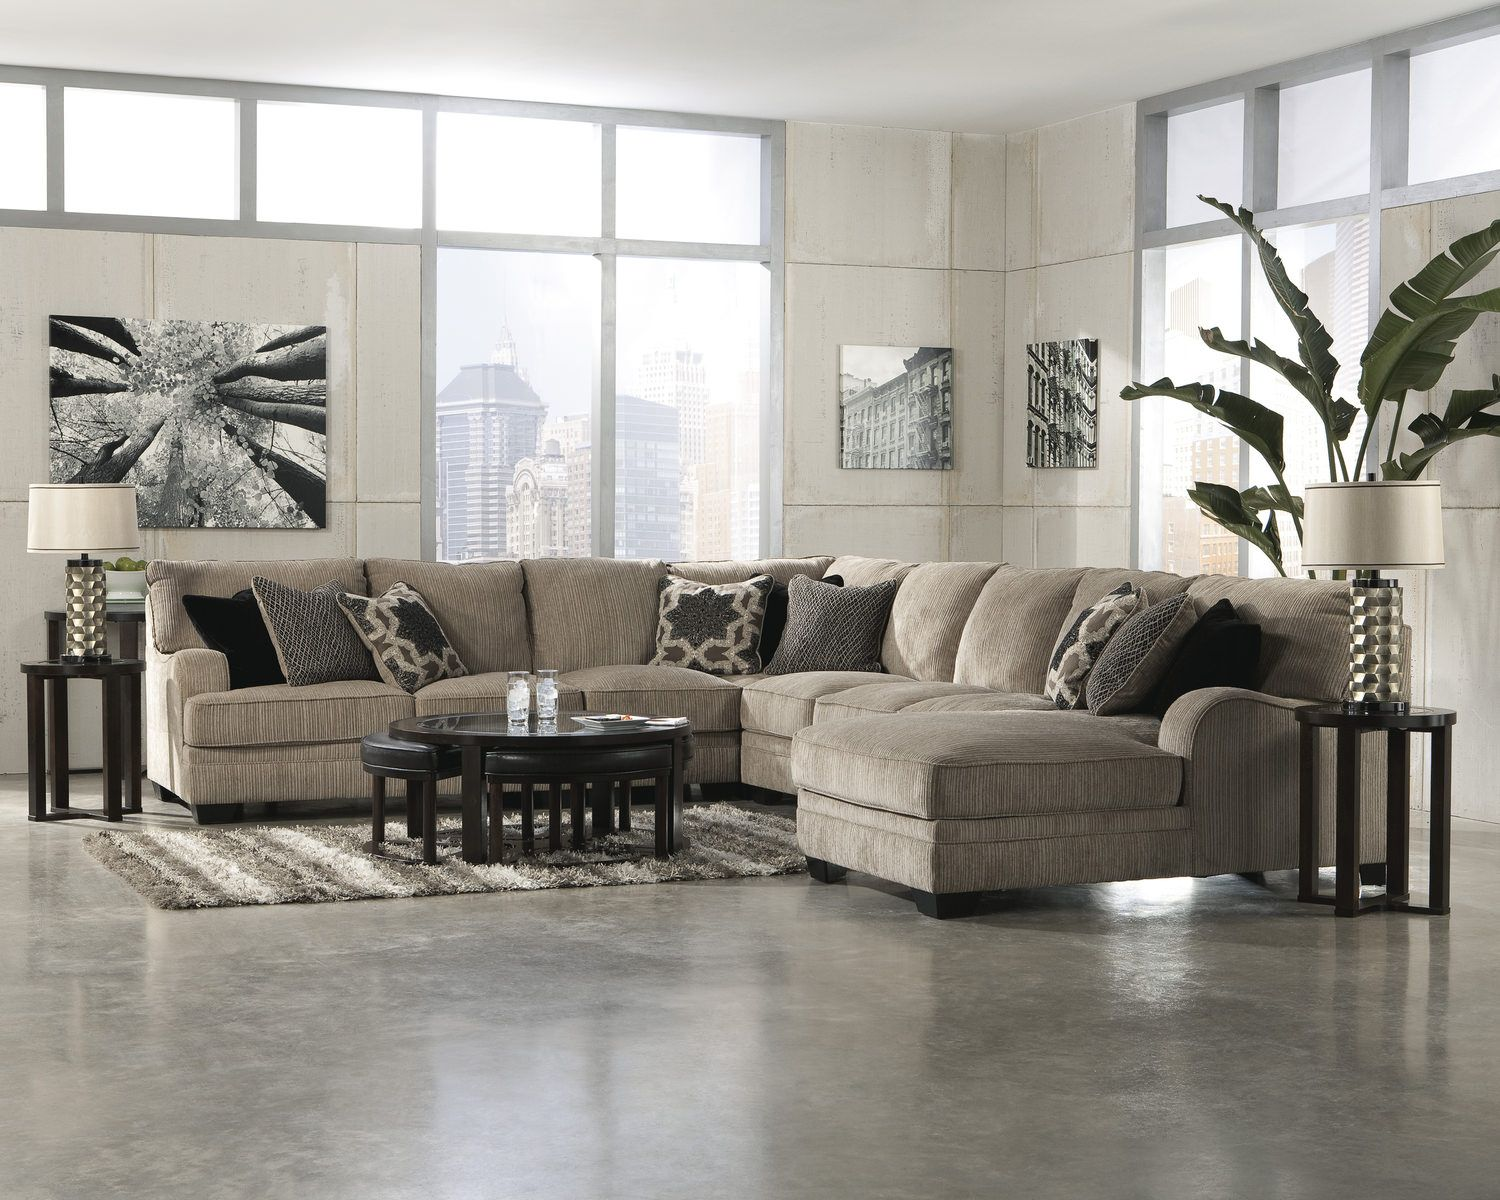 Tisha 5 Piece Sectional | Ashley furniture, Concrete ...